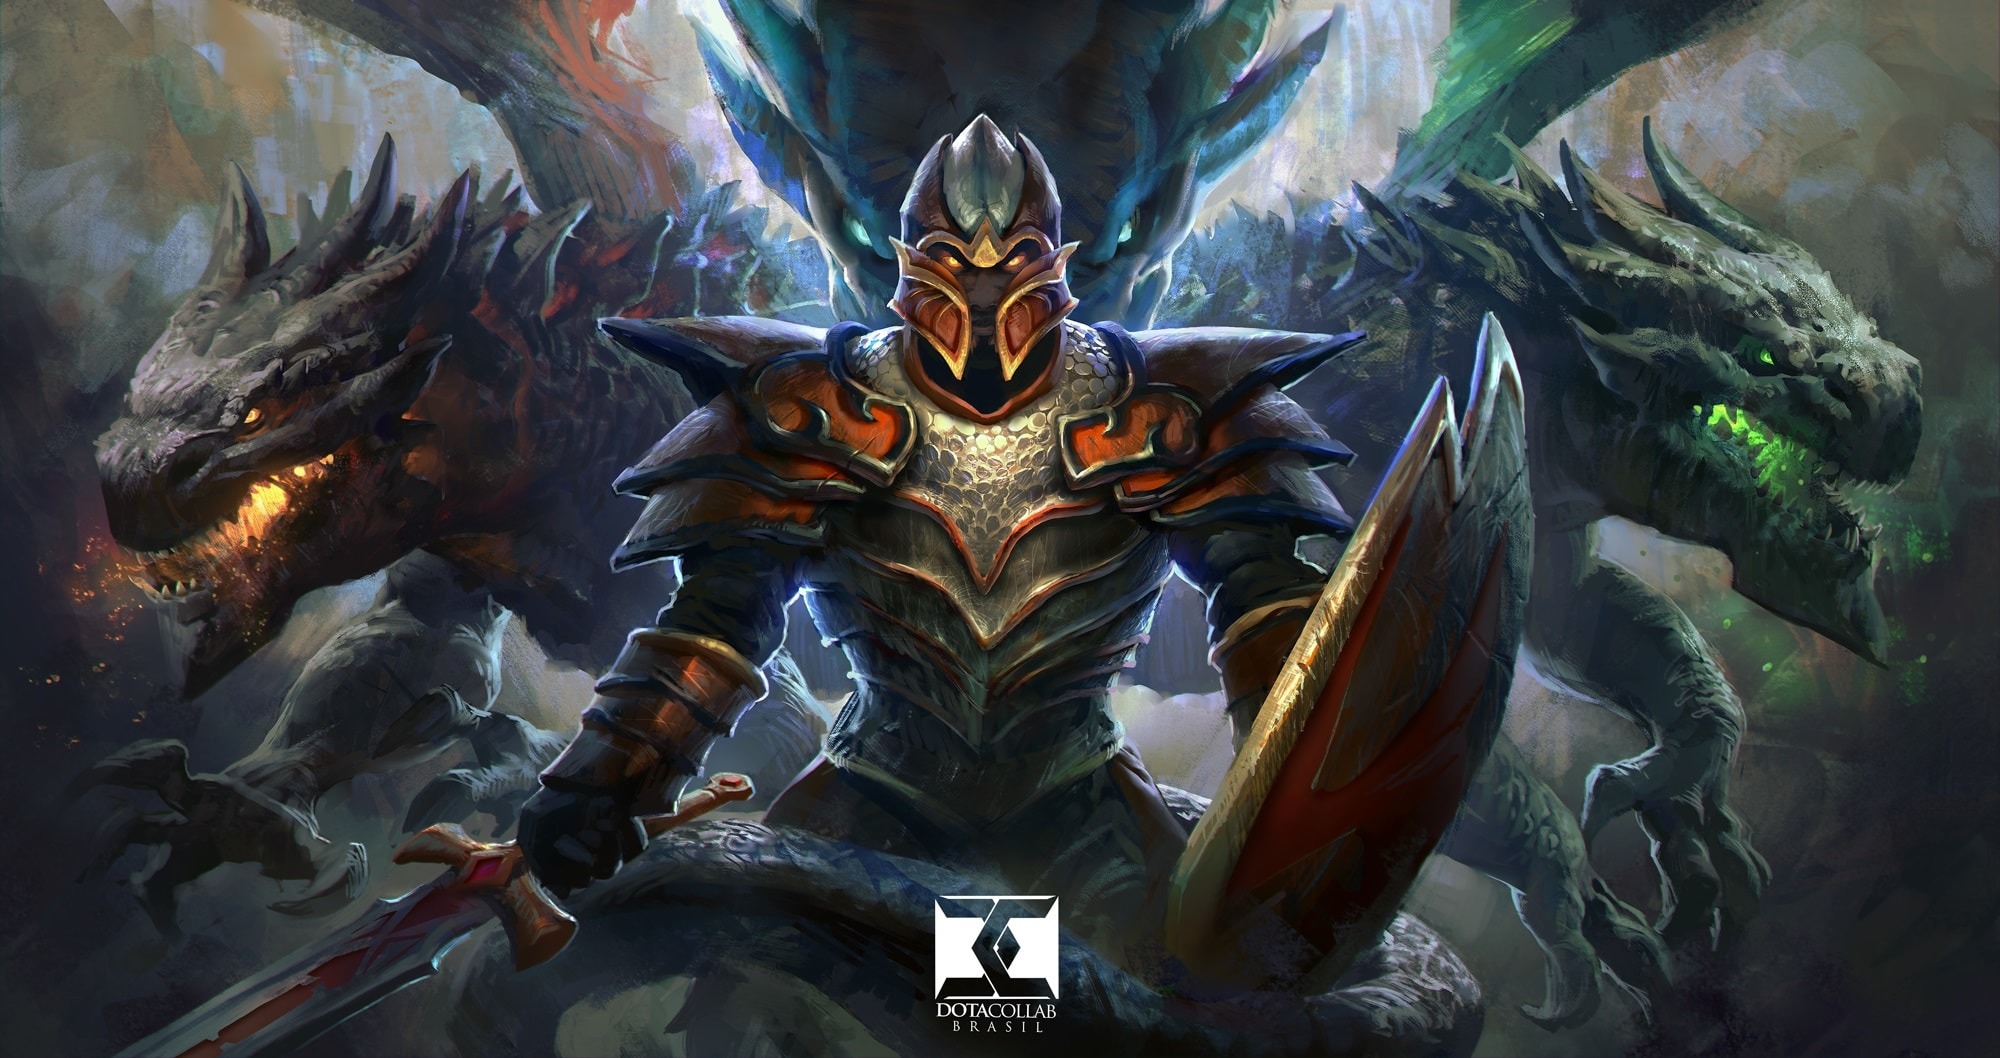 Dota2 : Dragon Knight desktop wallpaper